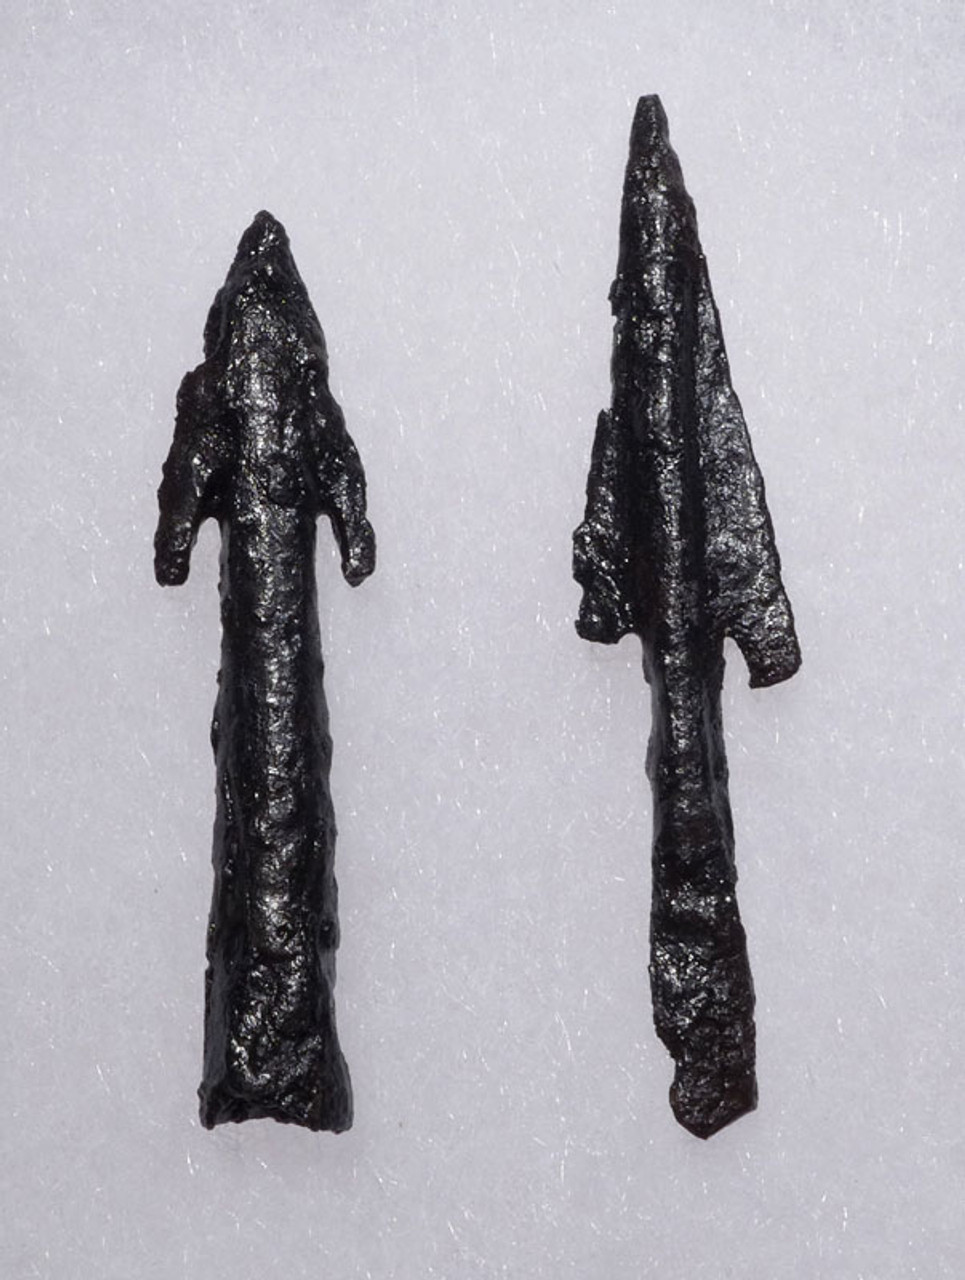 TWO RARE BYZANTINE ROMAN BARBED IRON ARROWHEADS FROM LIGHT CAVALRY ARCHER *R169